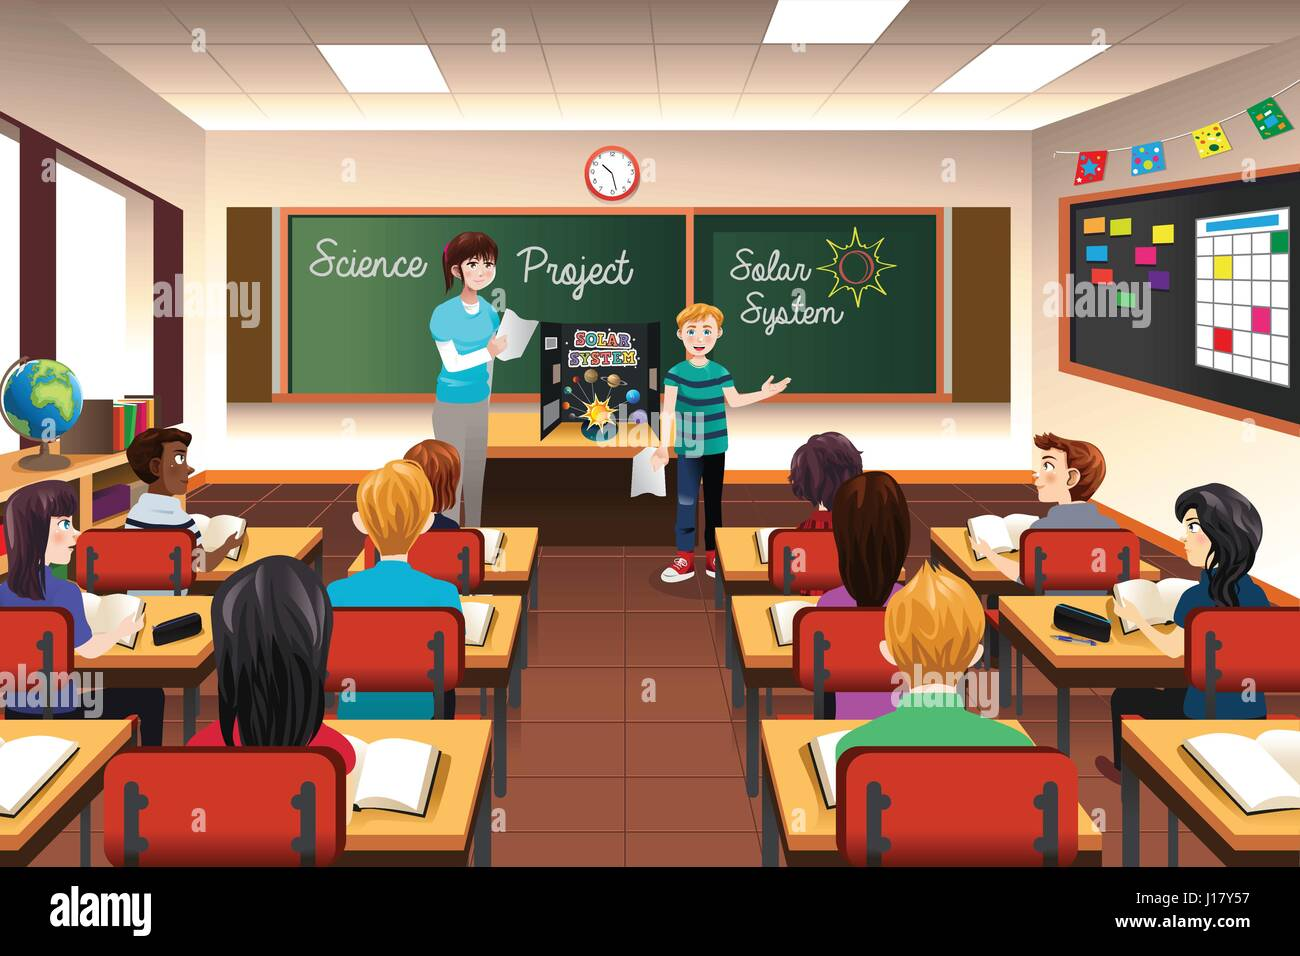 a vector illustration of student having science project presentation